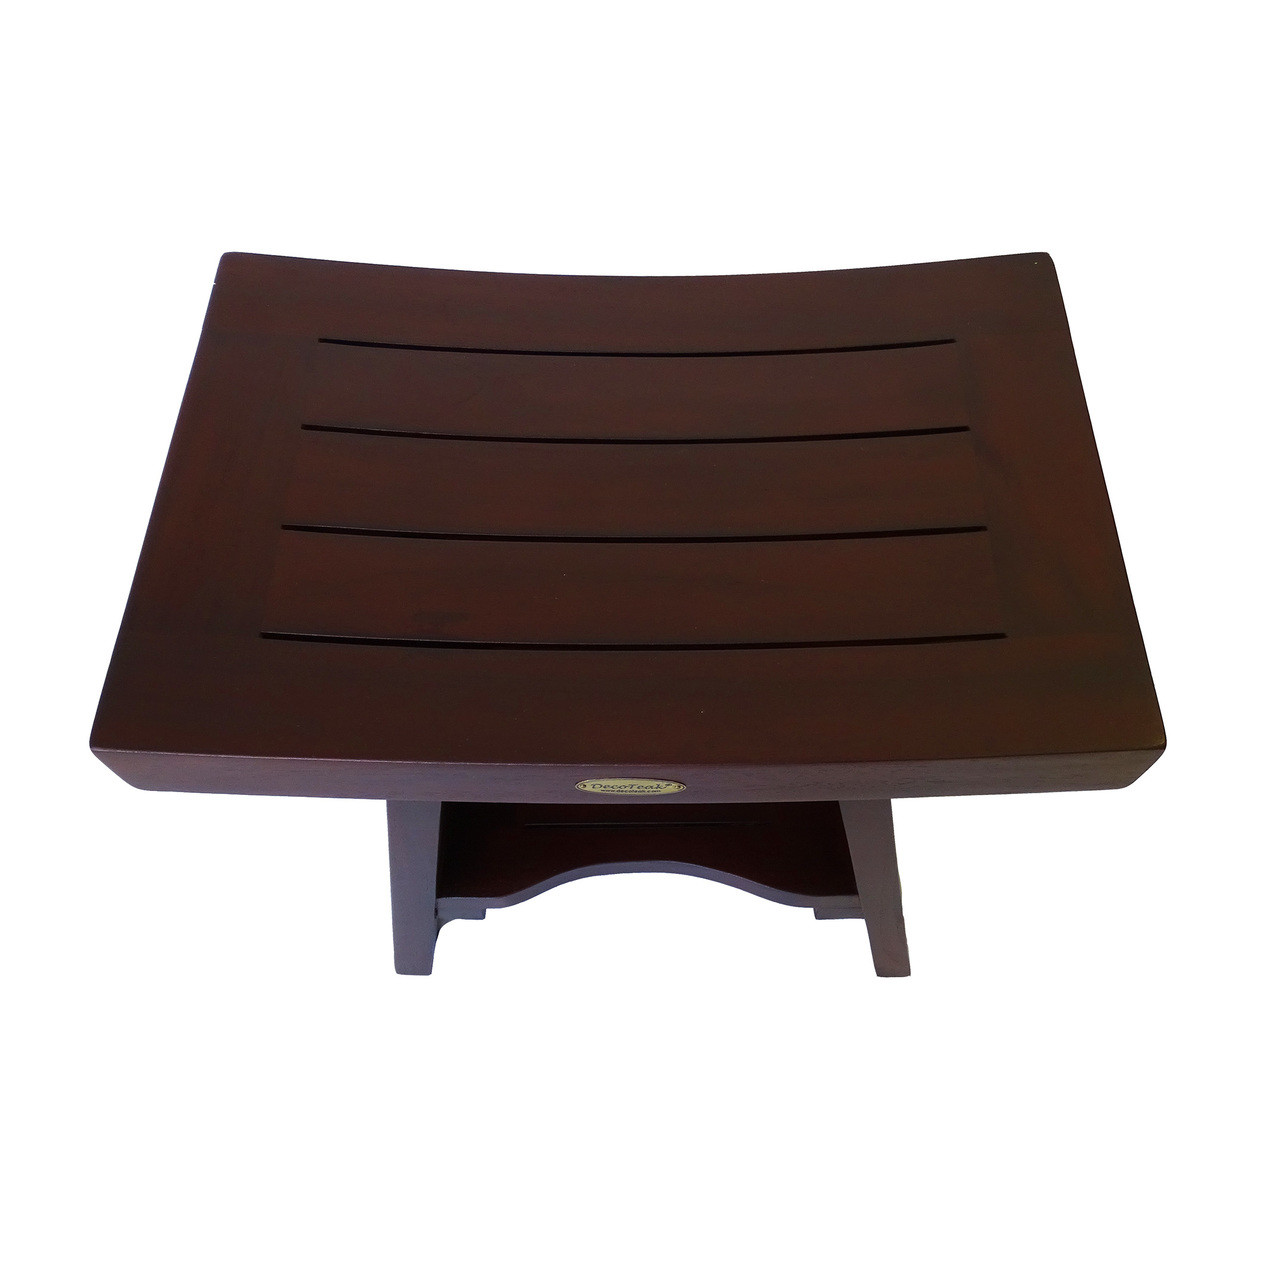 "DecoTeak Serenity 18"" Teak Wood Fully Assembled Shower Bench with Shelf in Woodland Brown Finish"